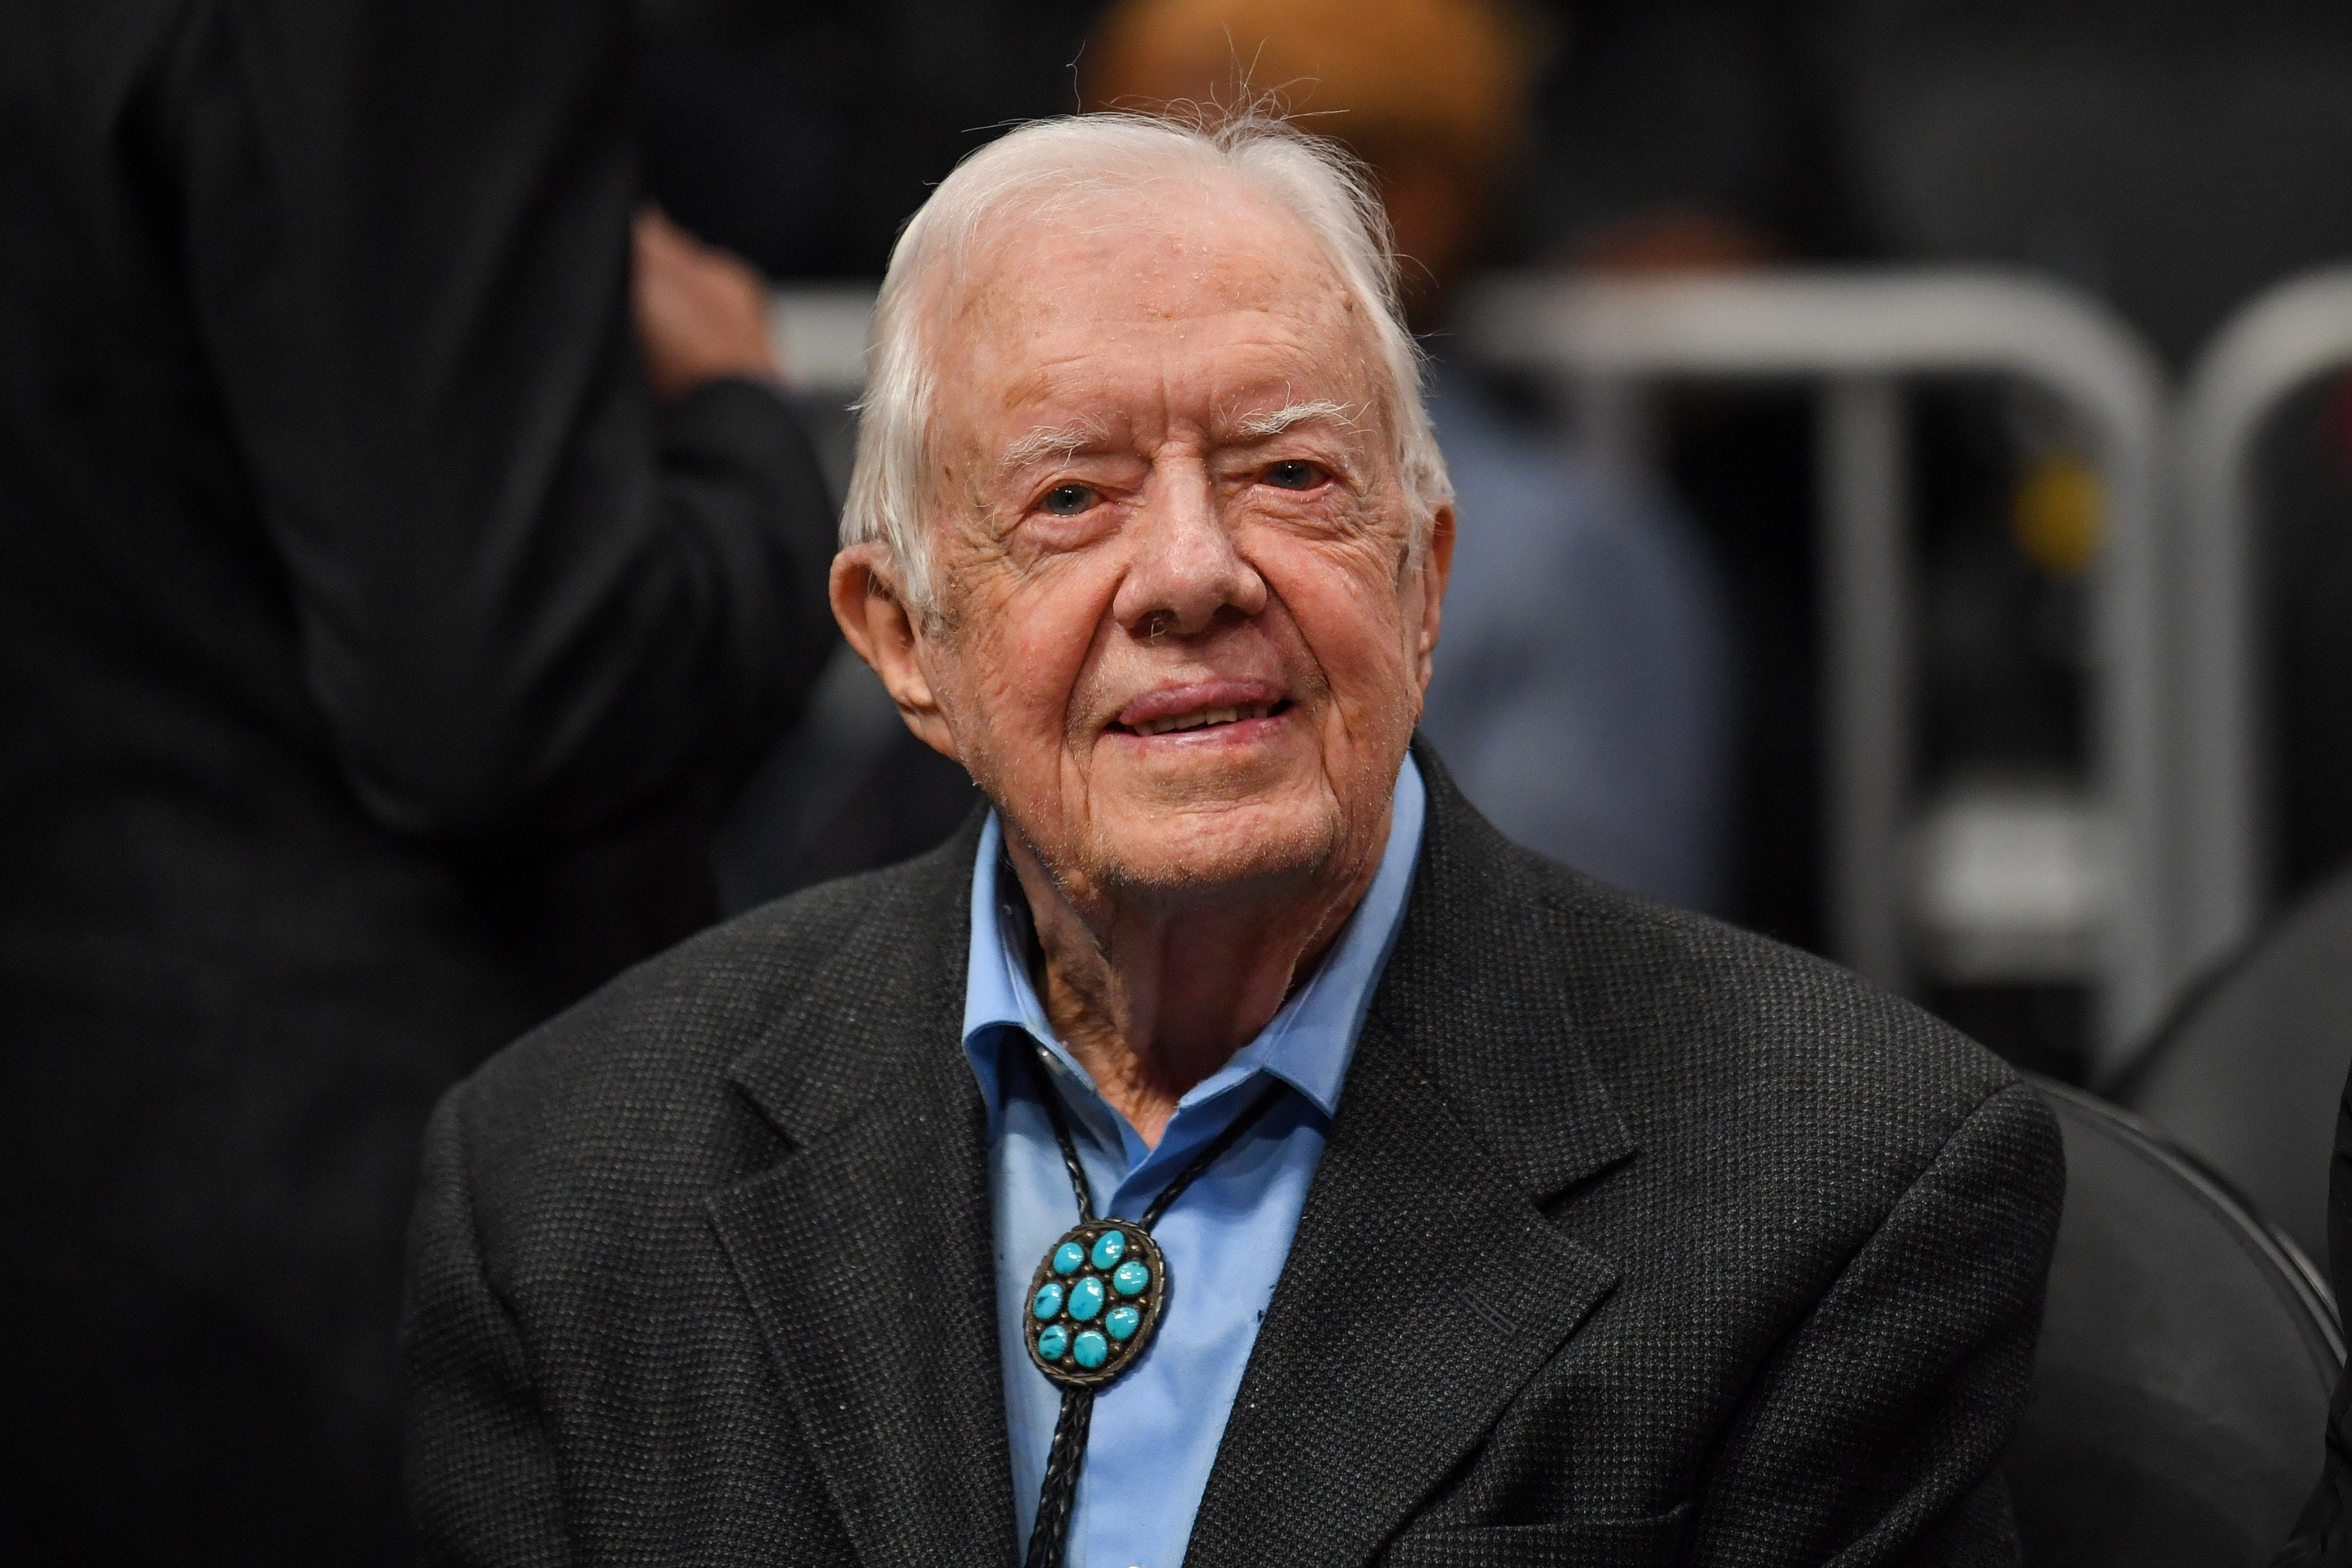 After phone call about China, White House says Trump 'always liked' Jimmy Carter